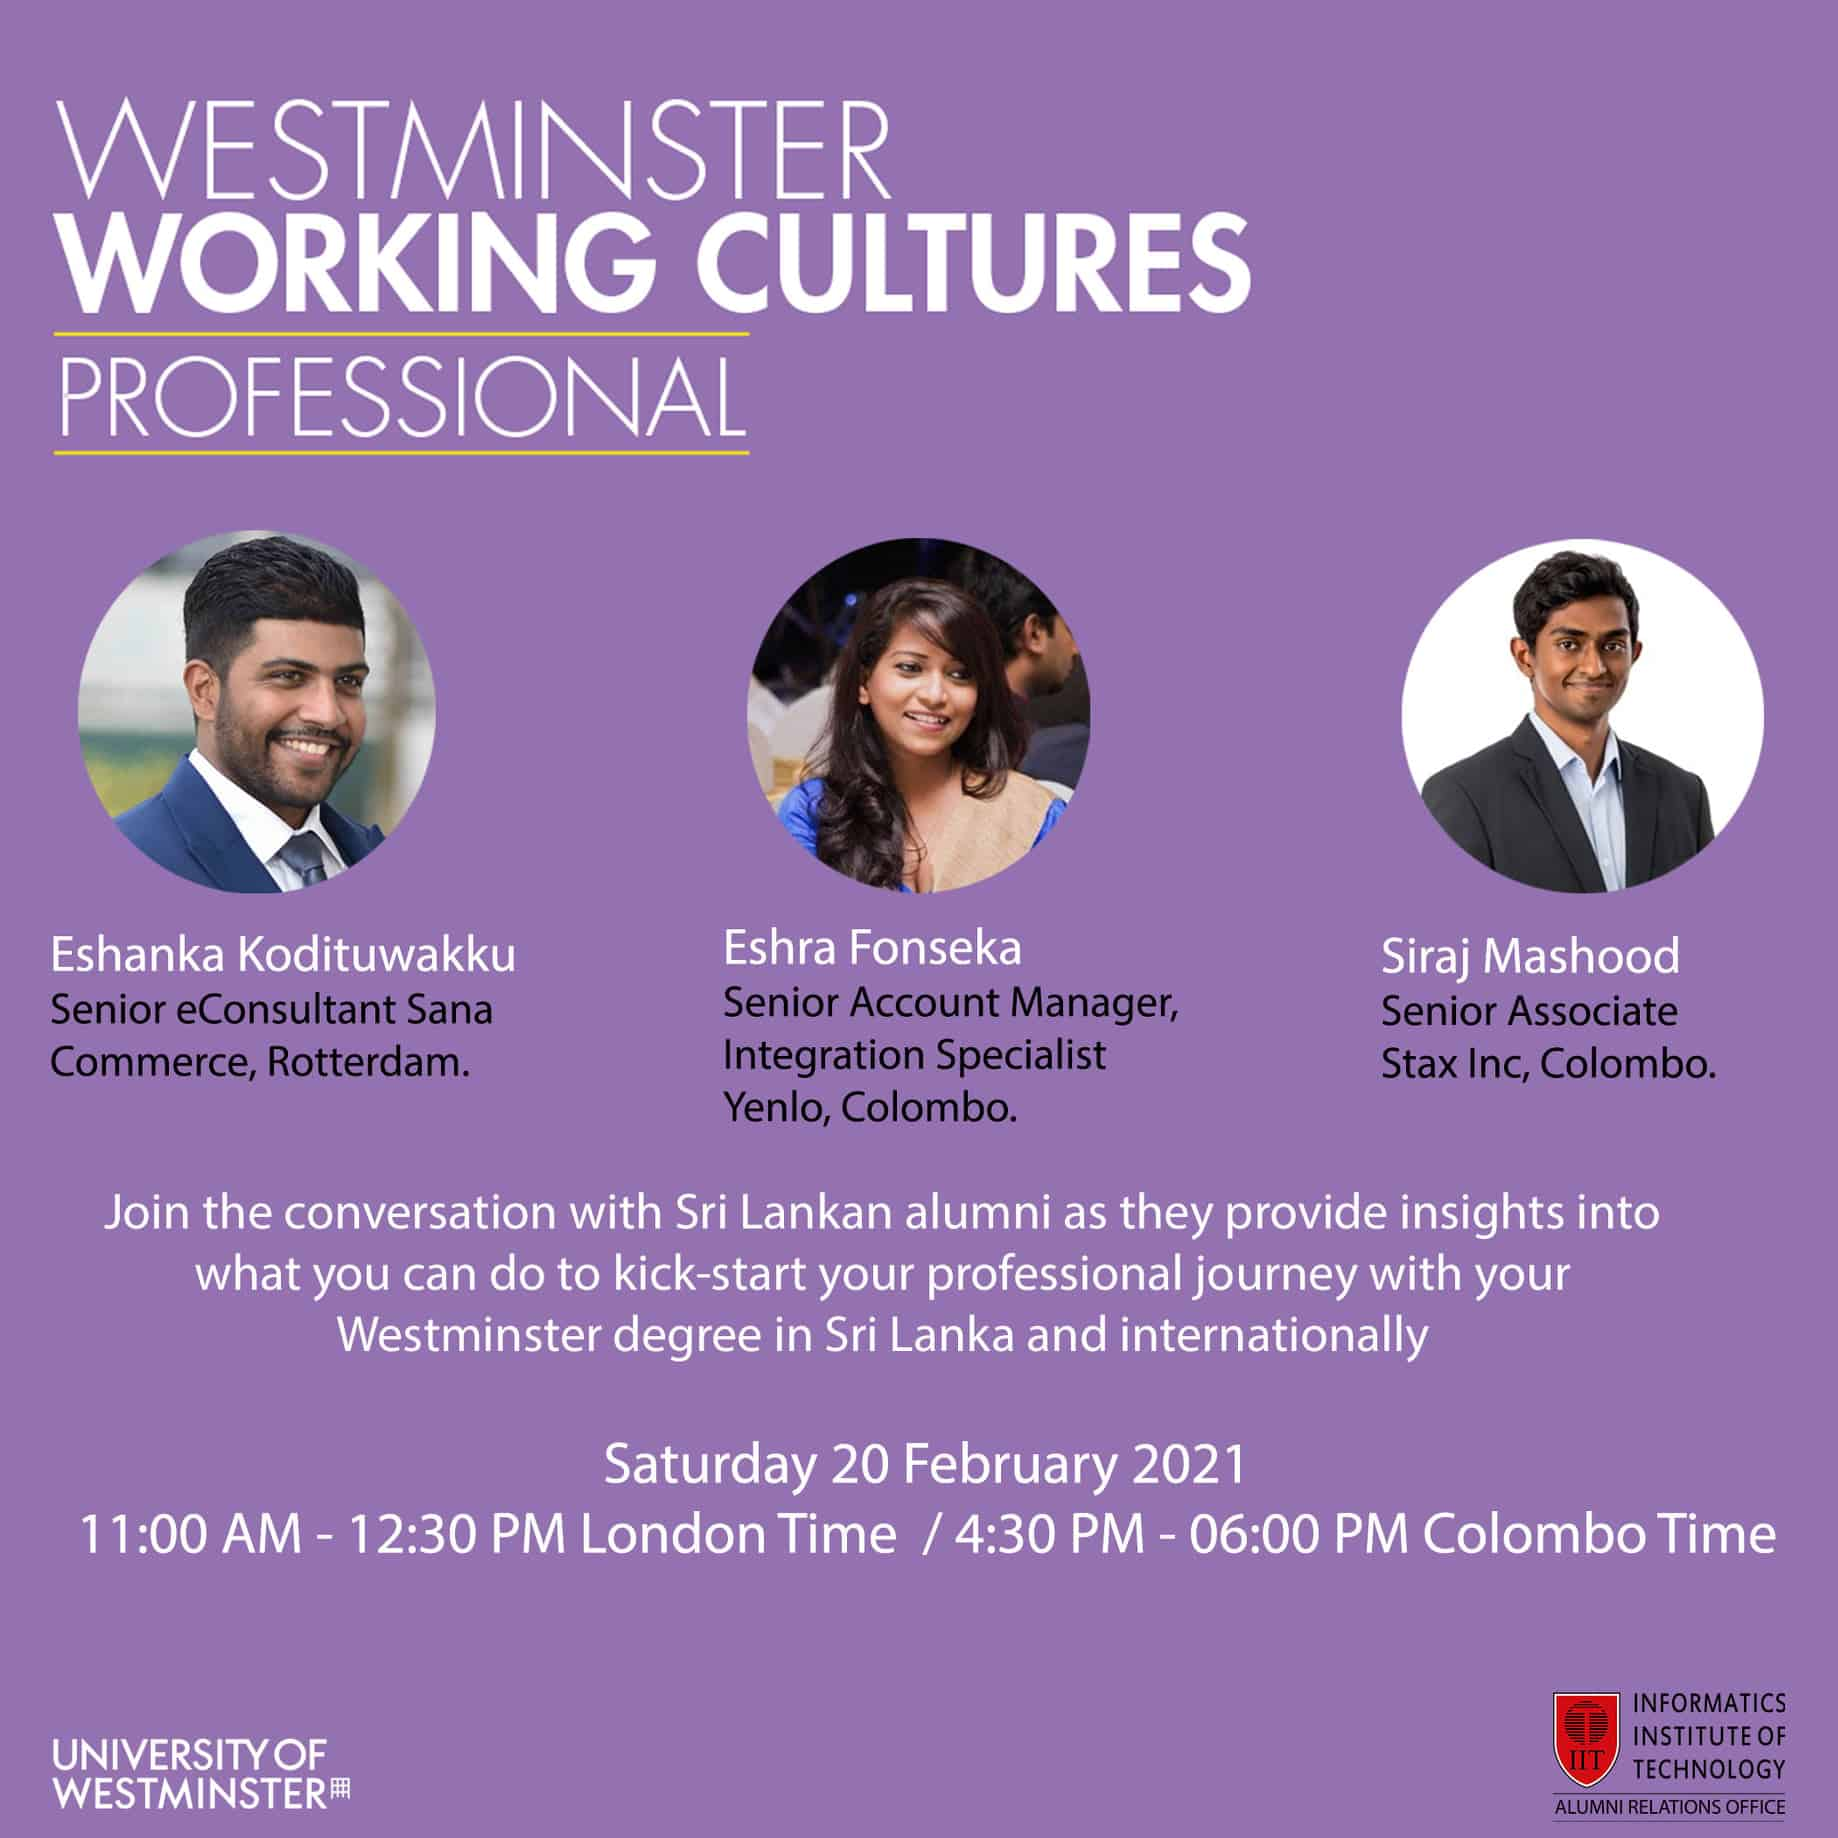 Westminster Working Culture Professionals - Sri Lanka